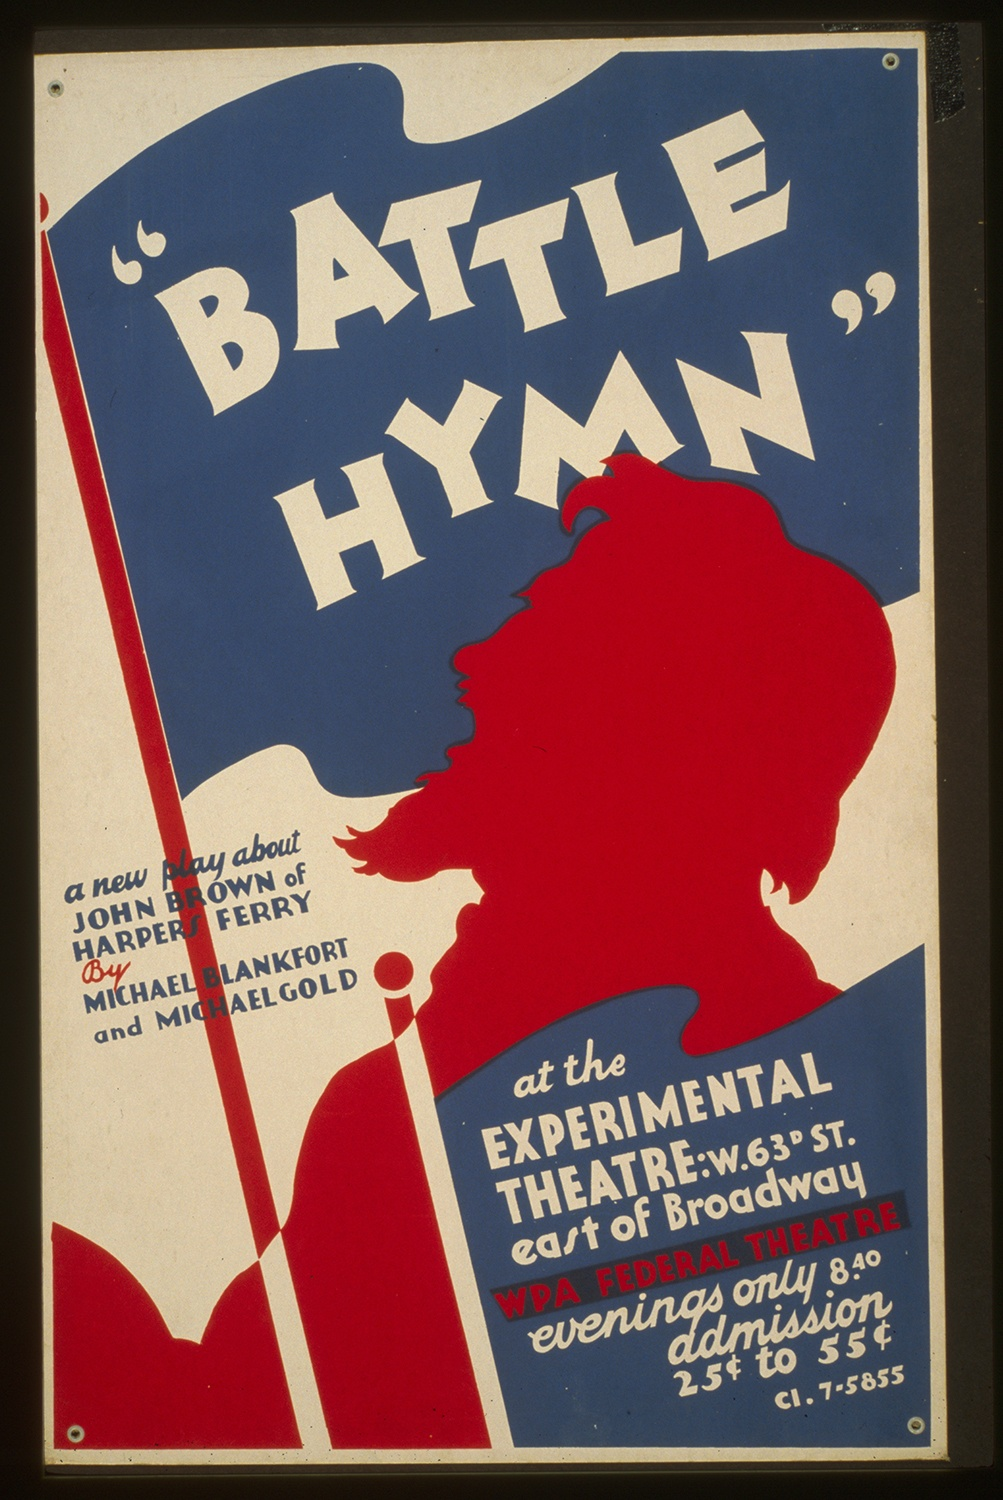 """Theatrical poster for """"Battle Hymn,"""" by George Goldschmidt for the Federal Art Project, between 1936-1941. This play about John Brown was produced as part of the Federal Theater Project in New York before World War II. Courtesy of the Library of Congress, Prints and Photographs Division."""